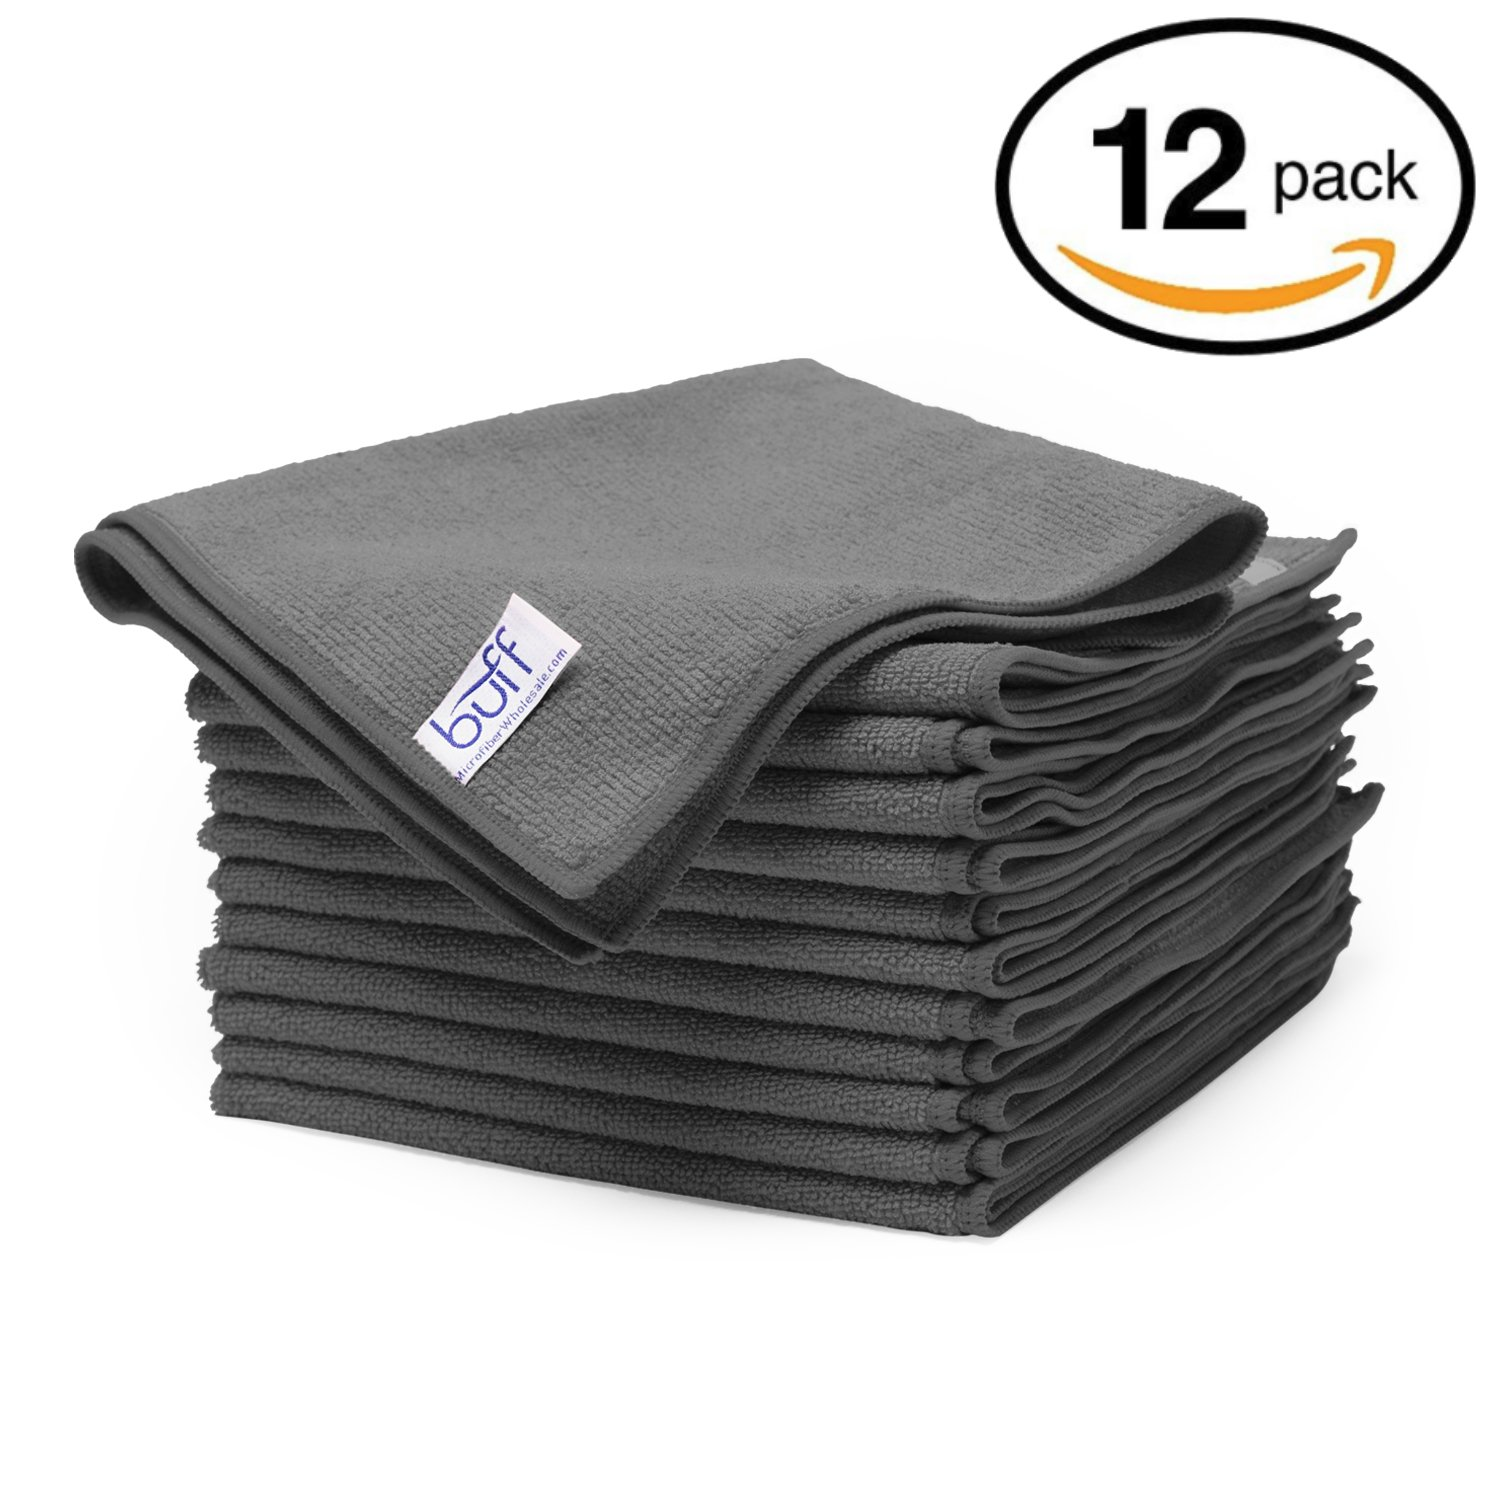 "Gray Microfiber Cleaning Cloths | Best Towels for Dusting, Scrubbing, Polishing, Absorbing | Large 16"" x 16"" Buff Pro Multi-Surface Microfiber Towel(Grey) - 12 Pack"